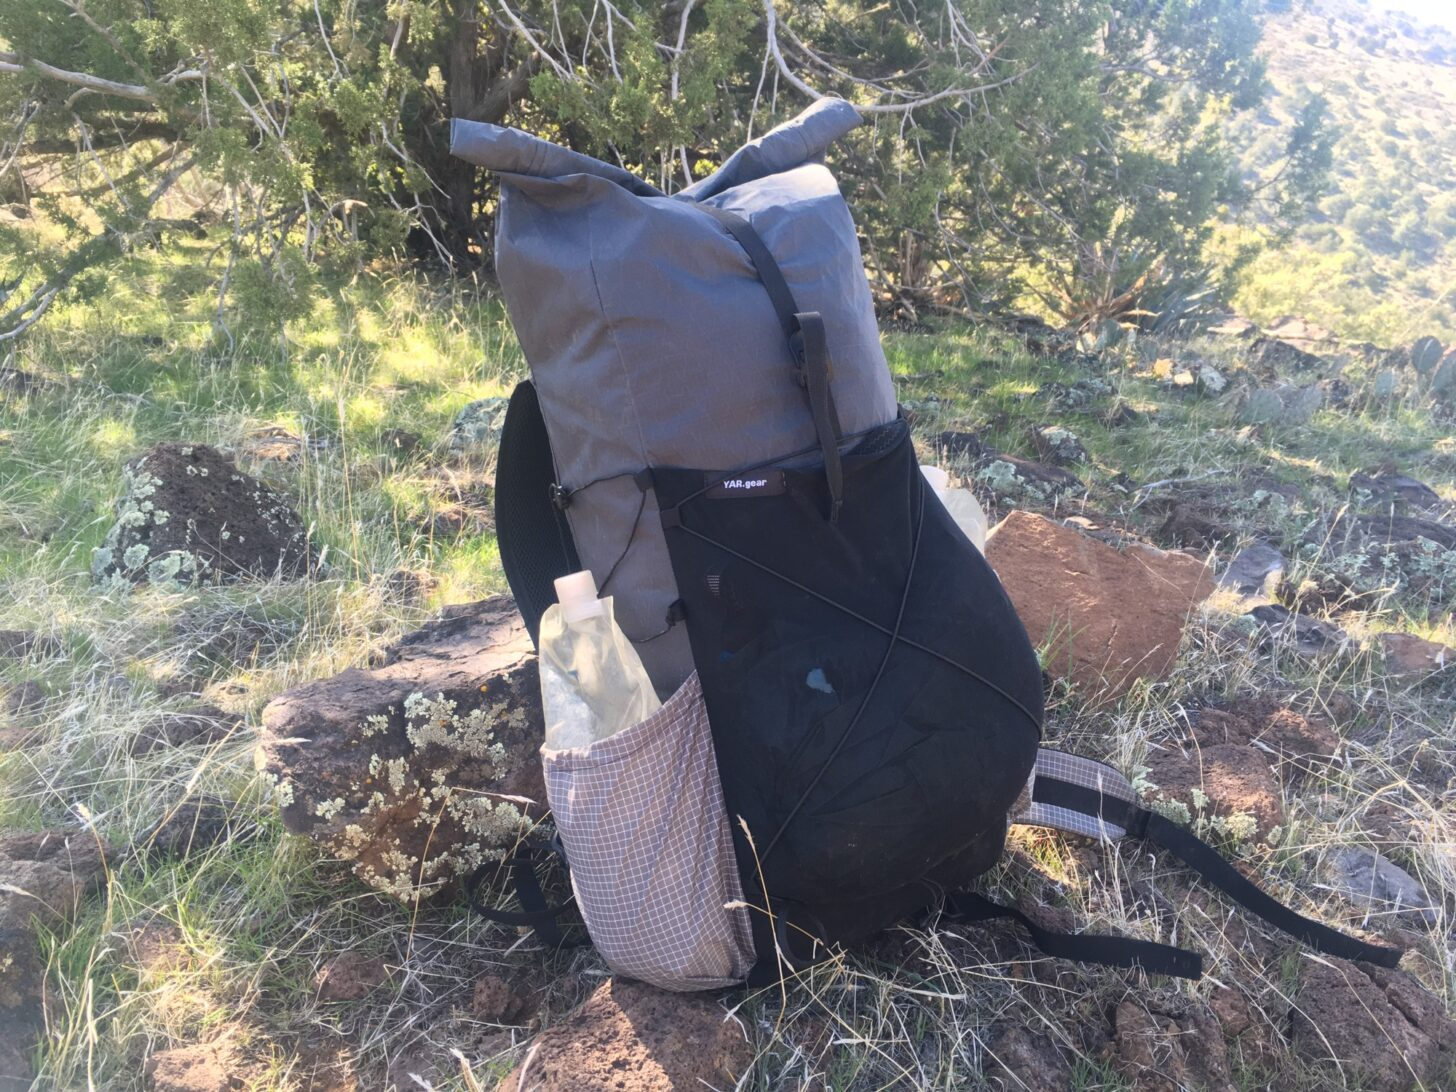 A loaded pack sits on the ground.